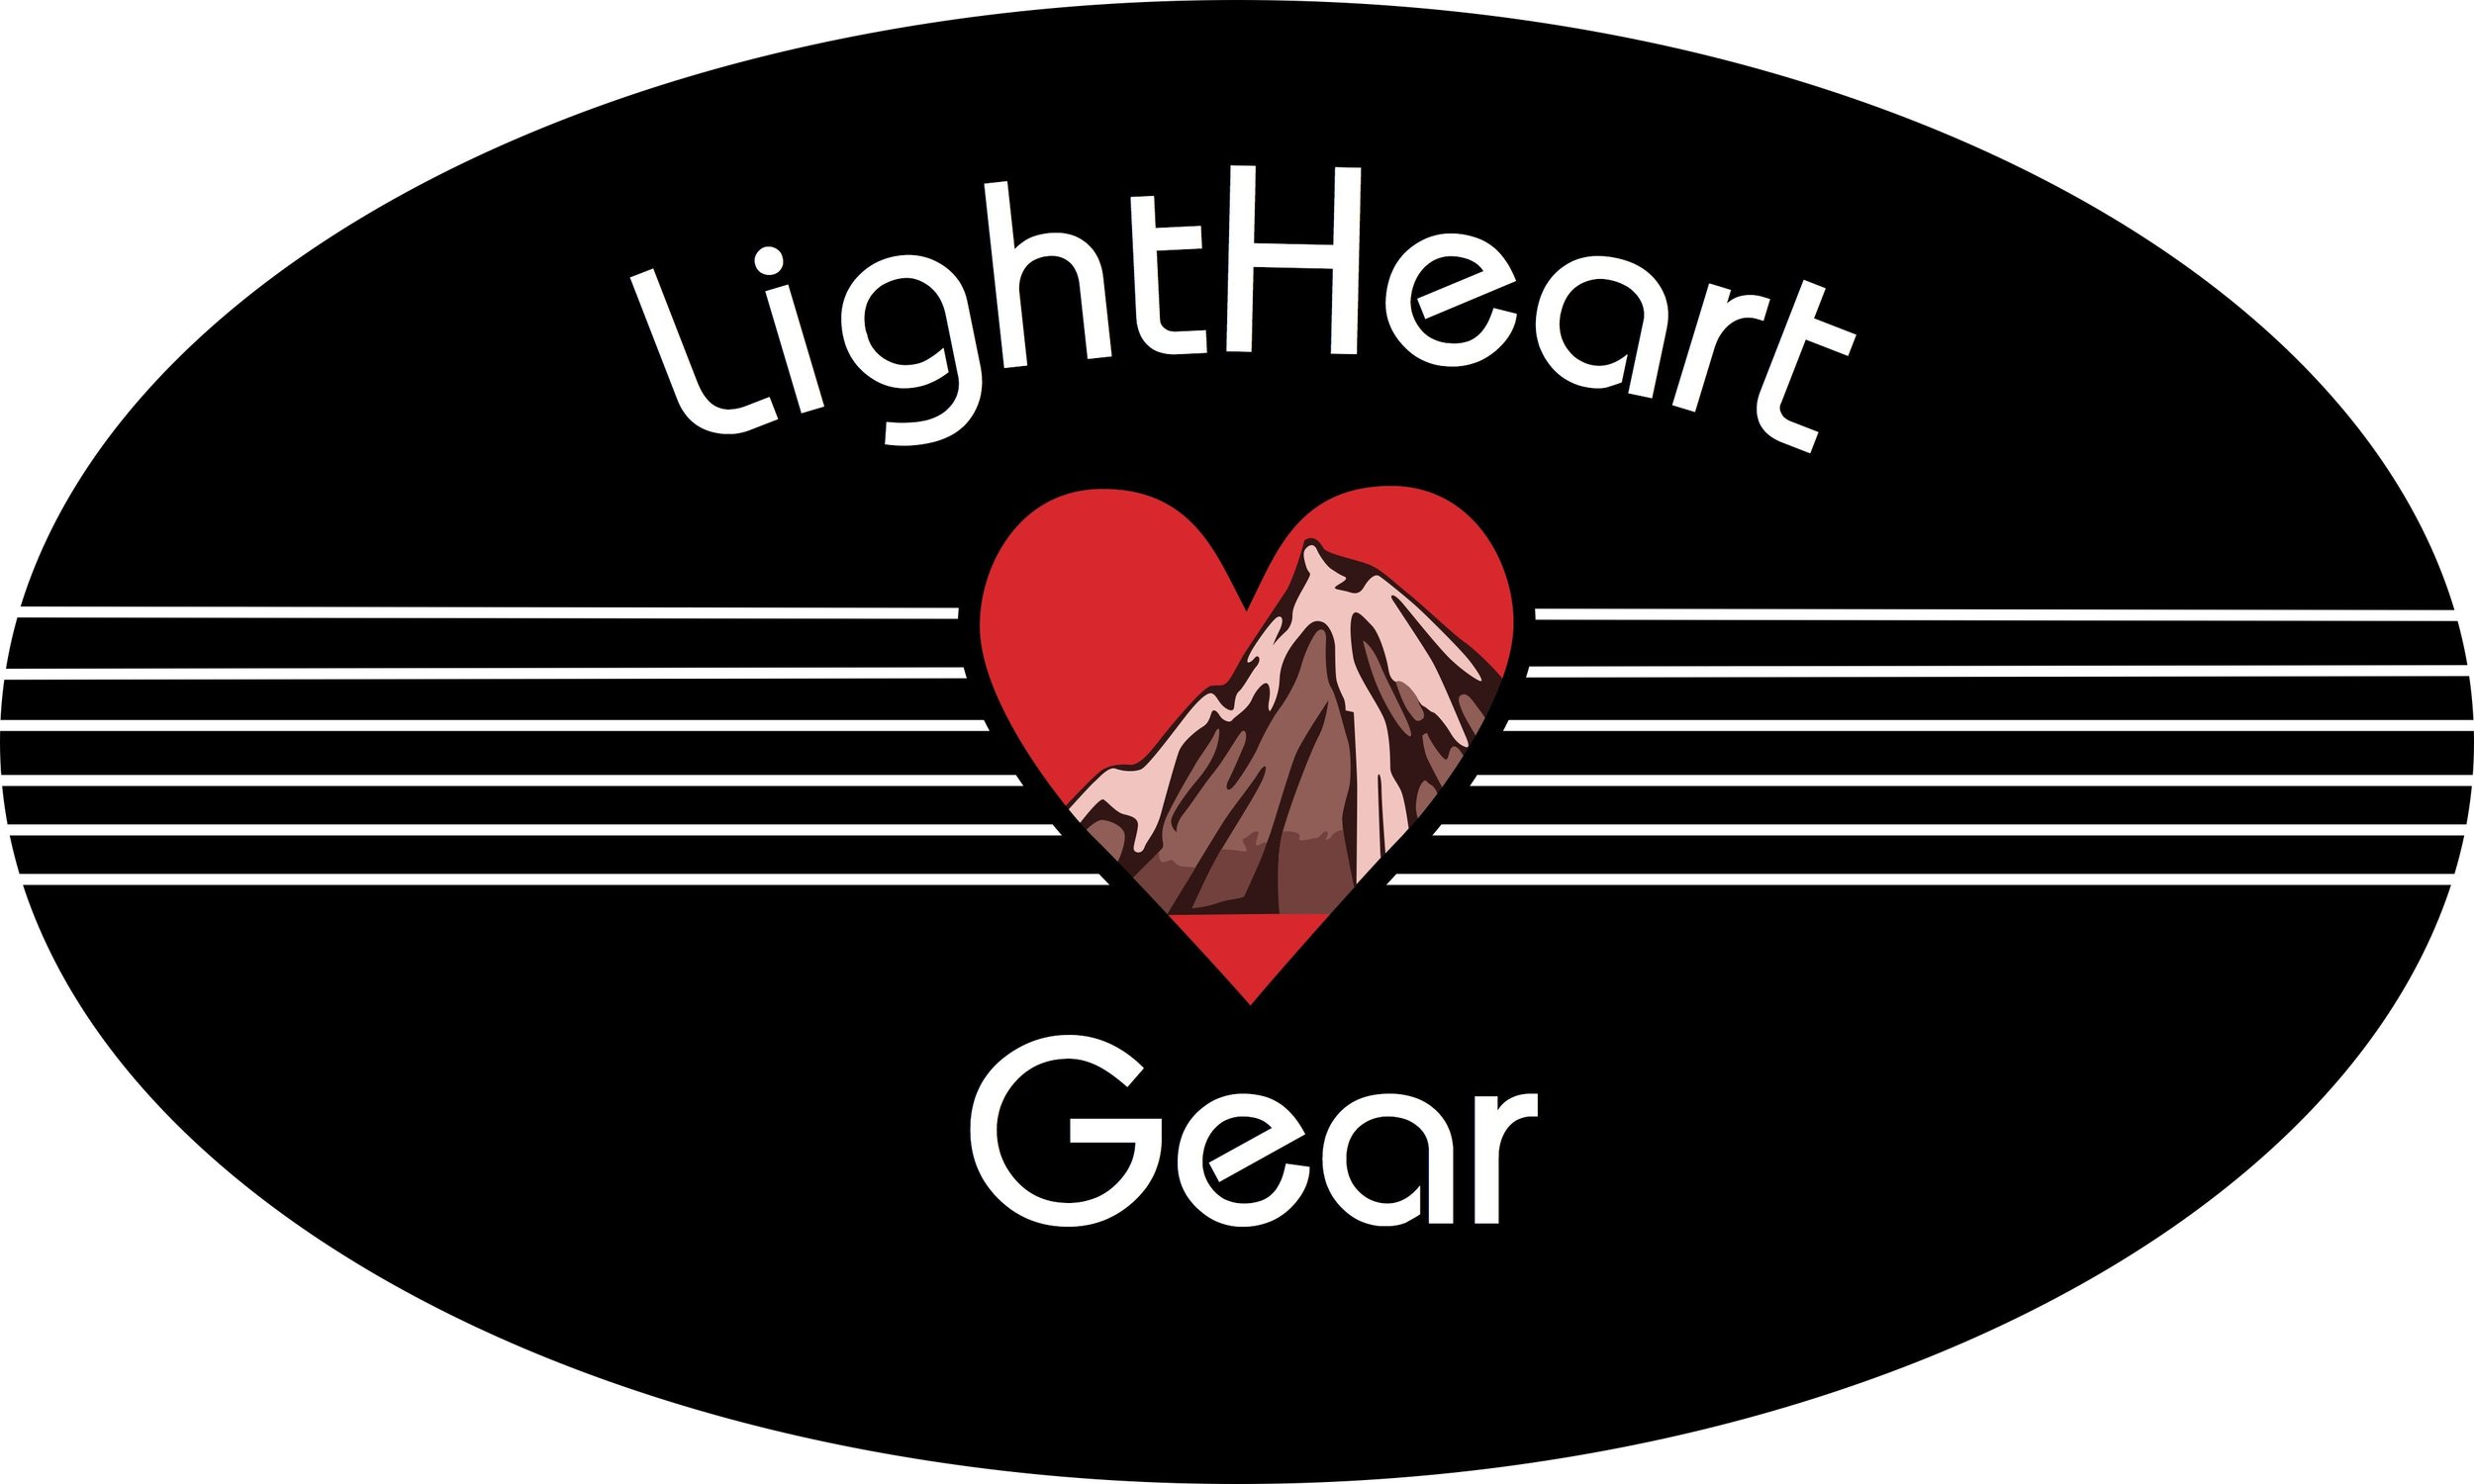 Lightheart gear oval_hang_tag_final_3750x.jpg